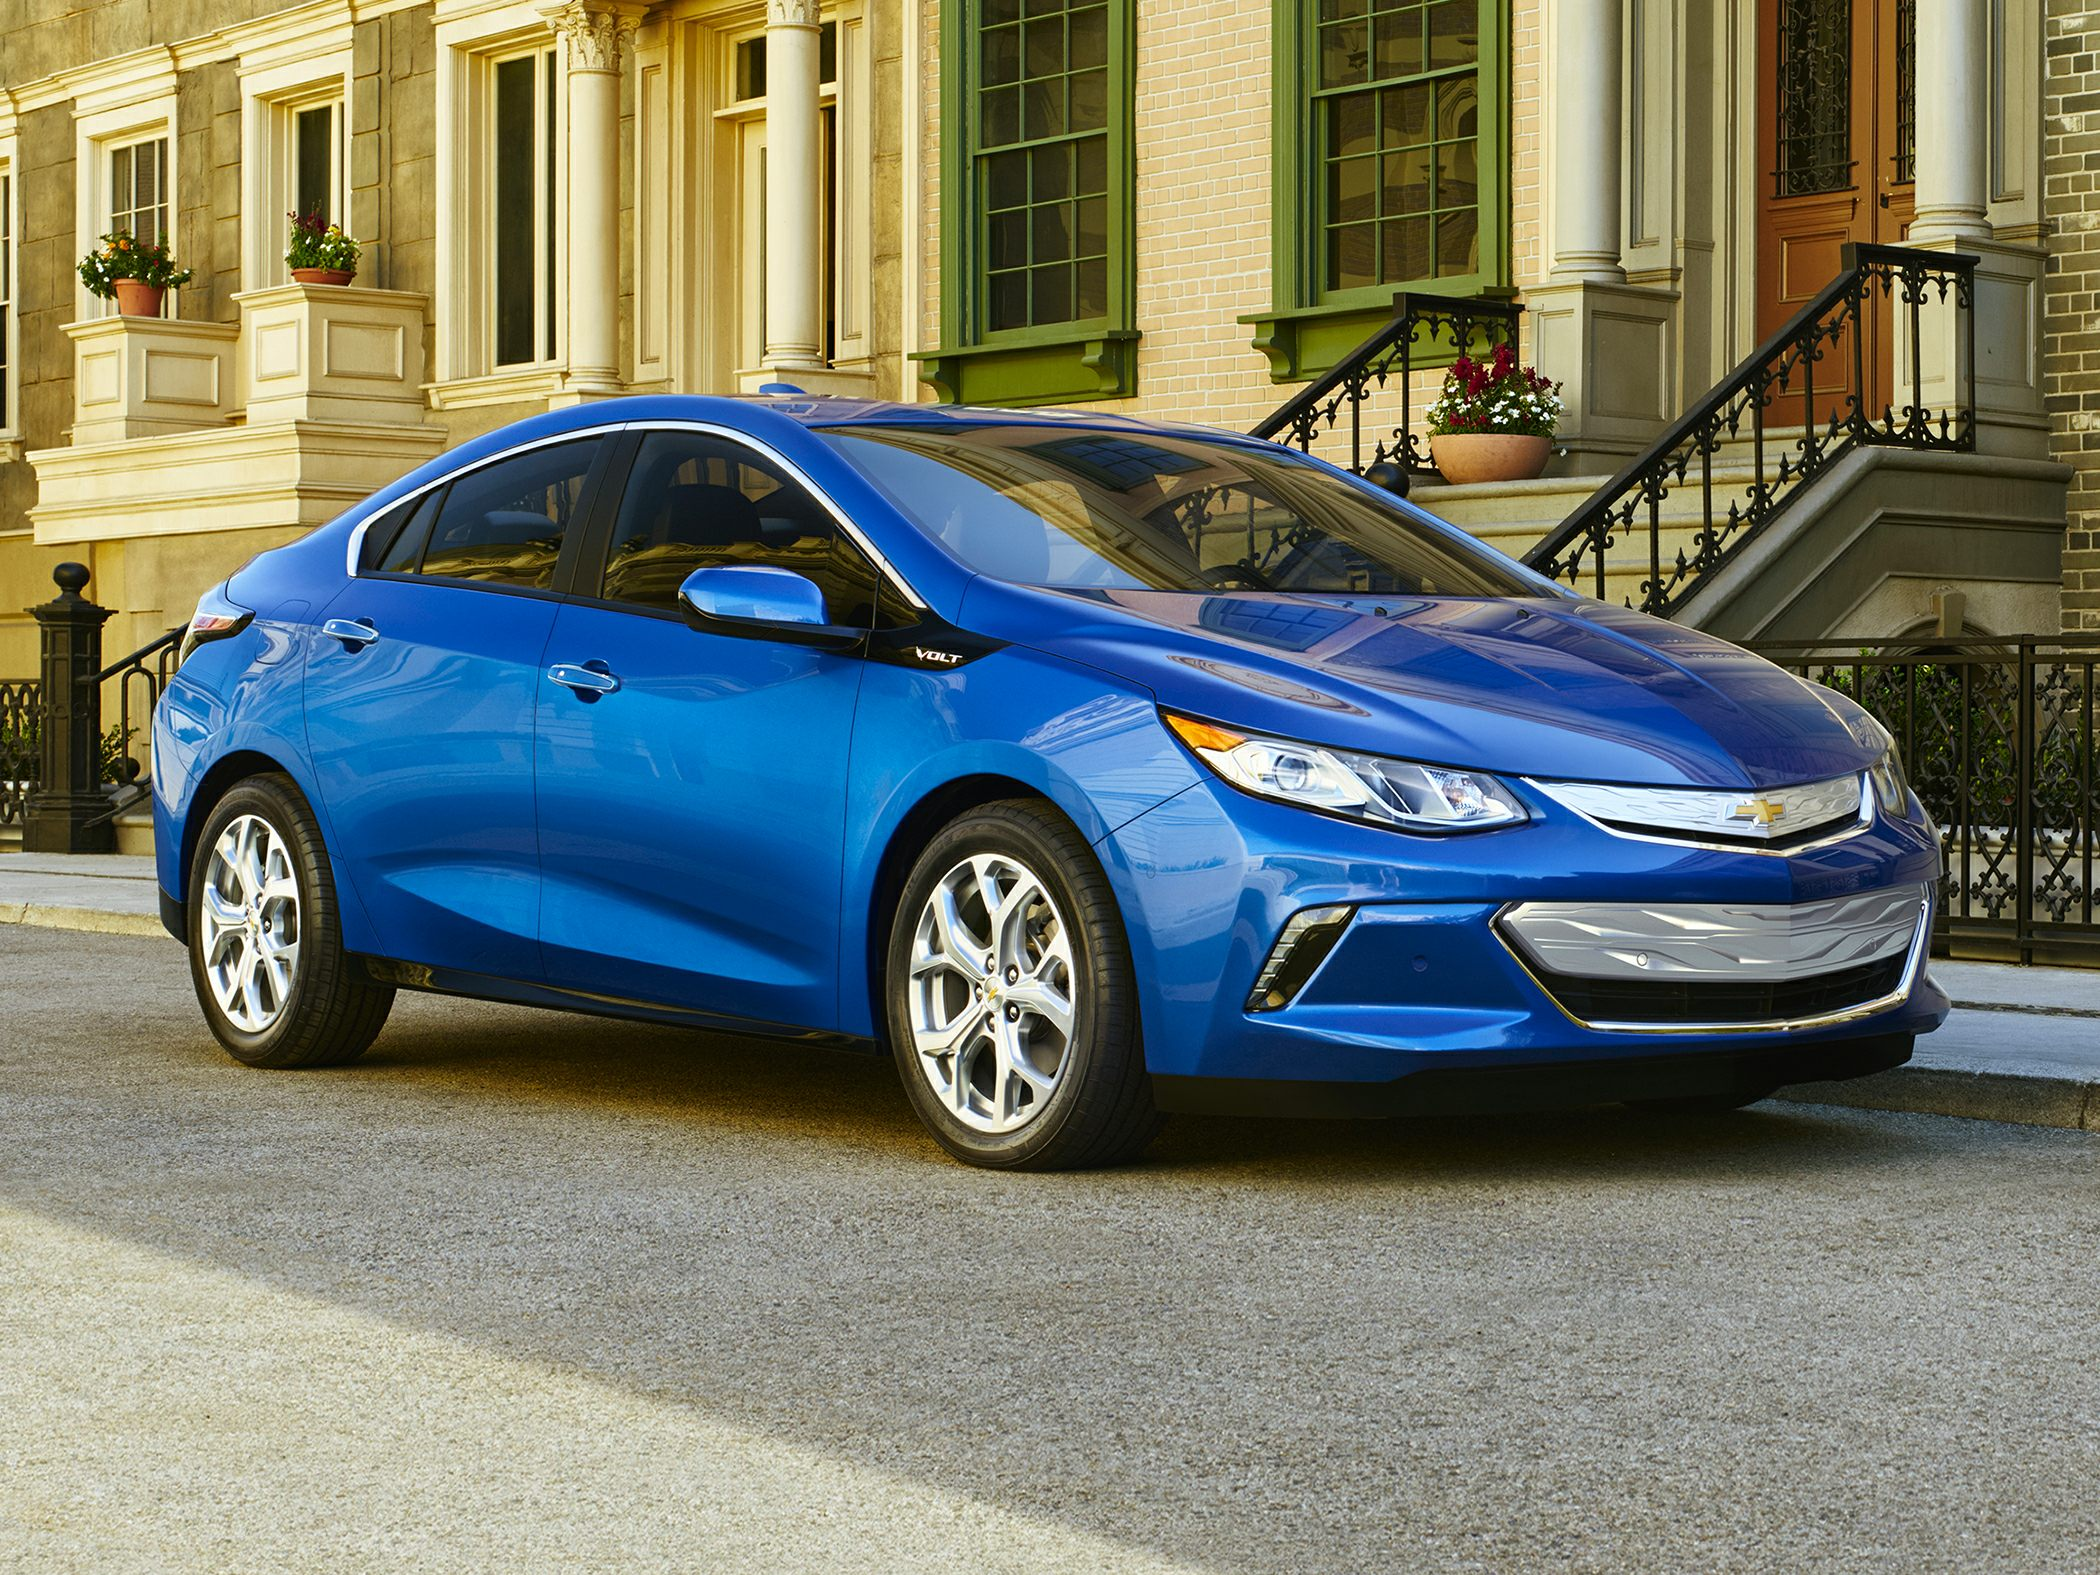 2018 chevrolet volt deals, prices, incentives & leases, overview